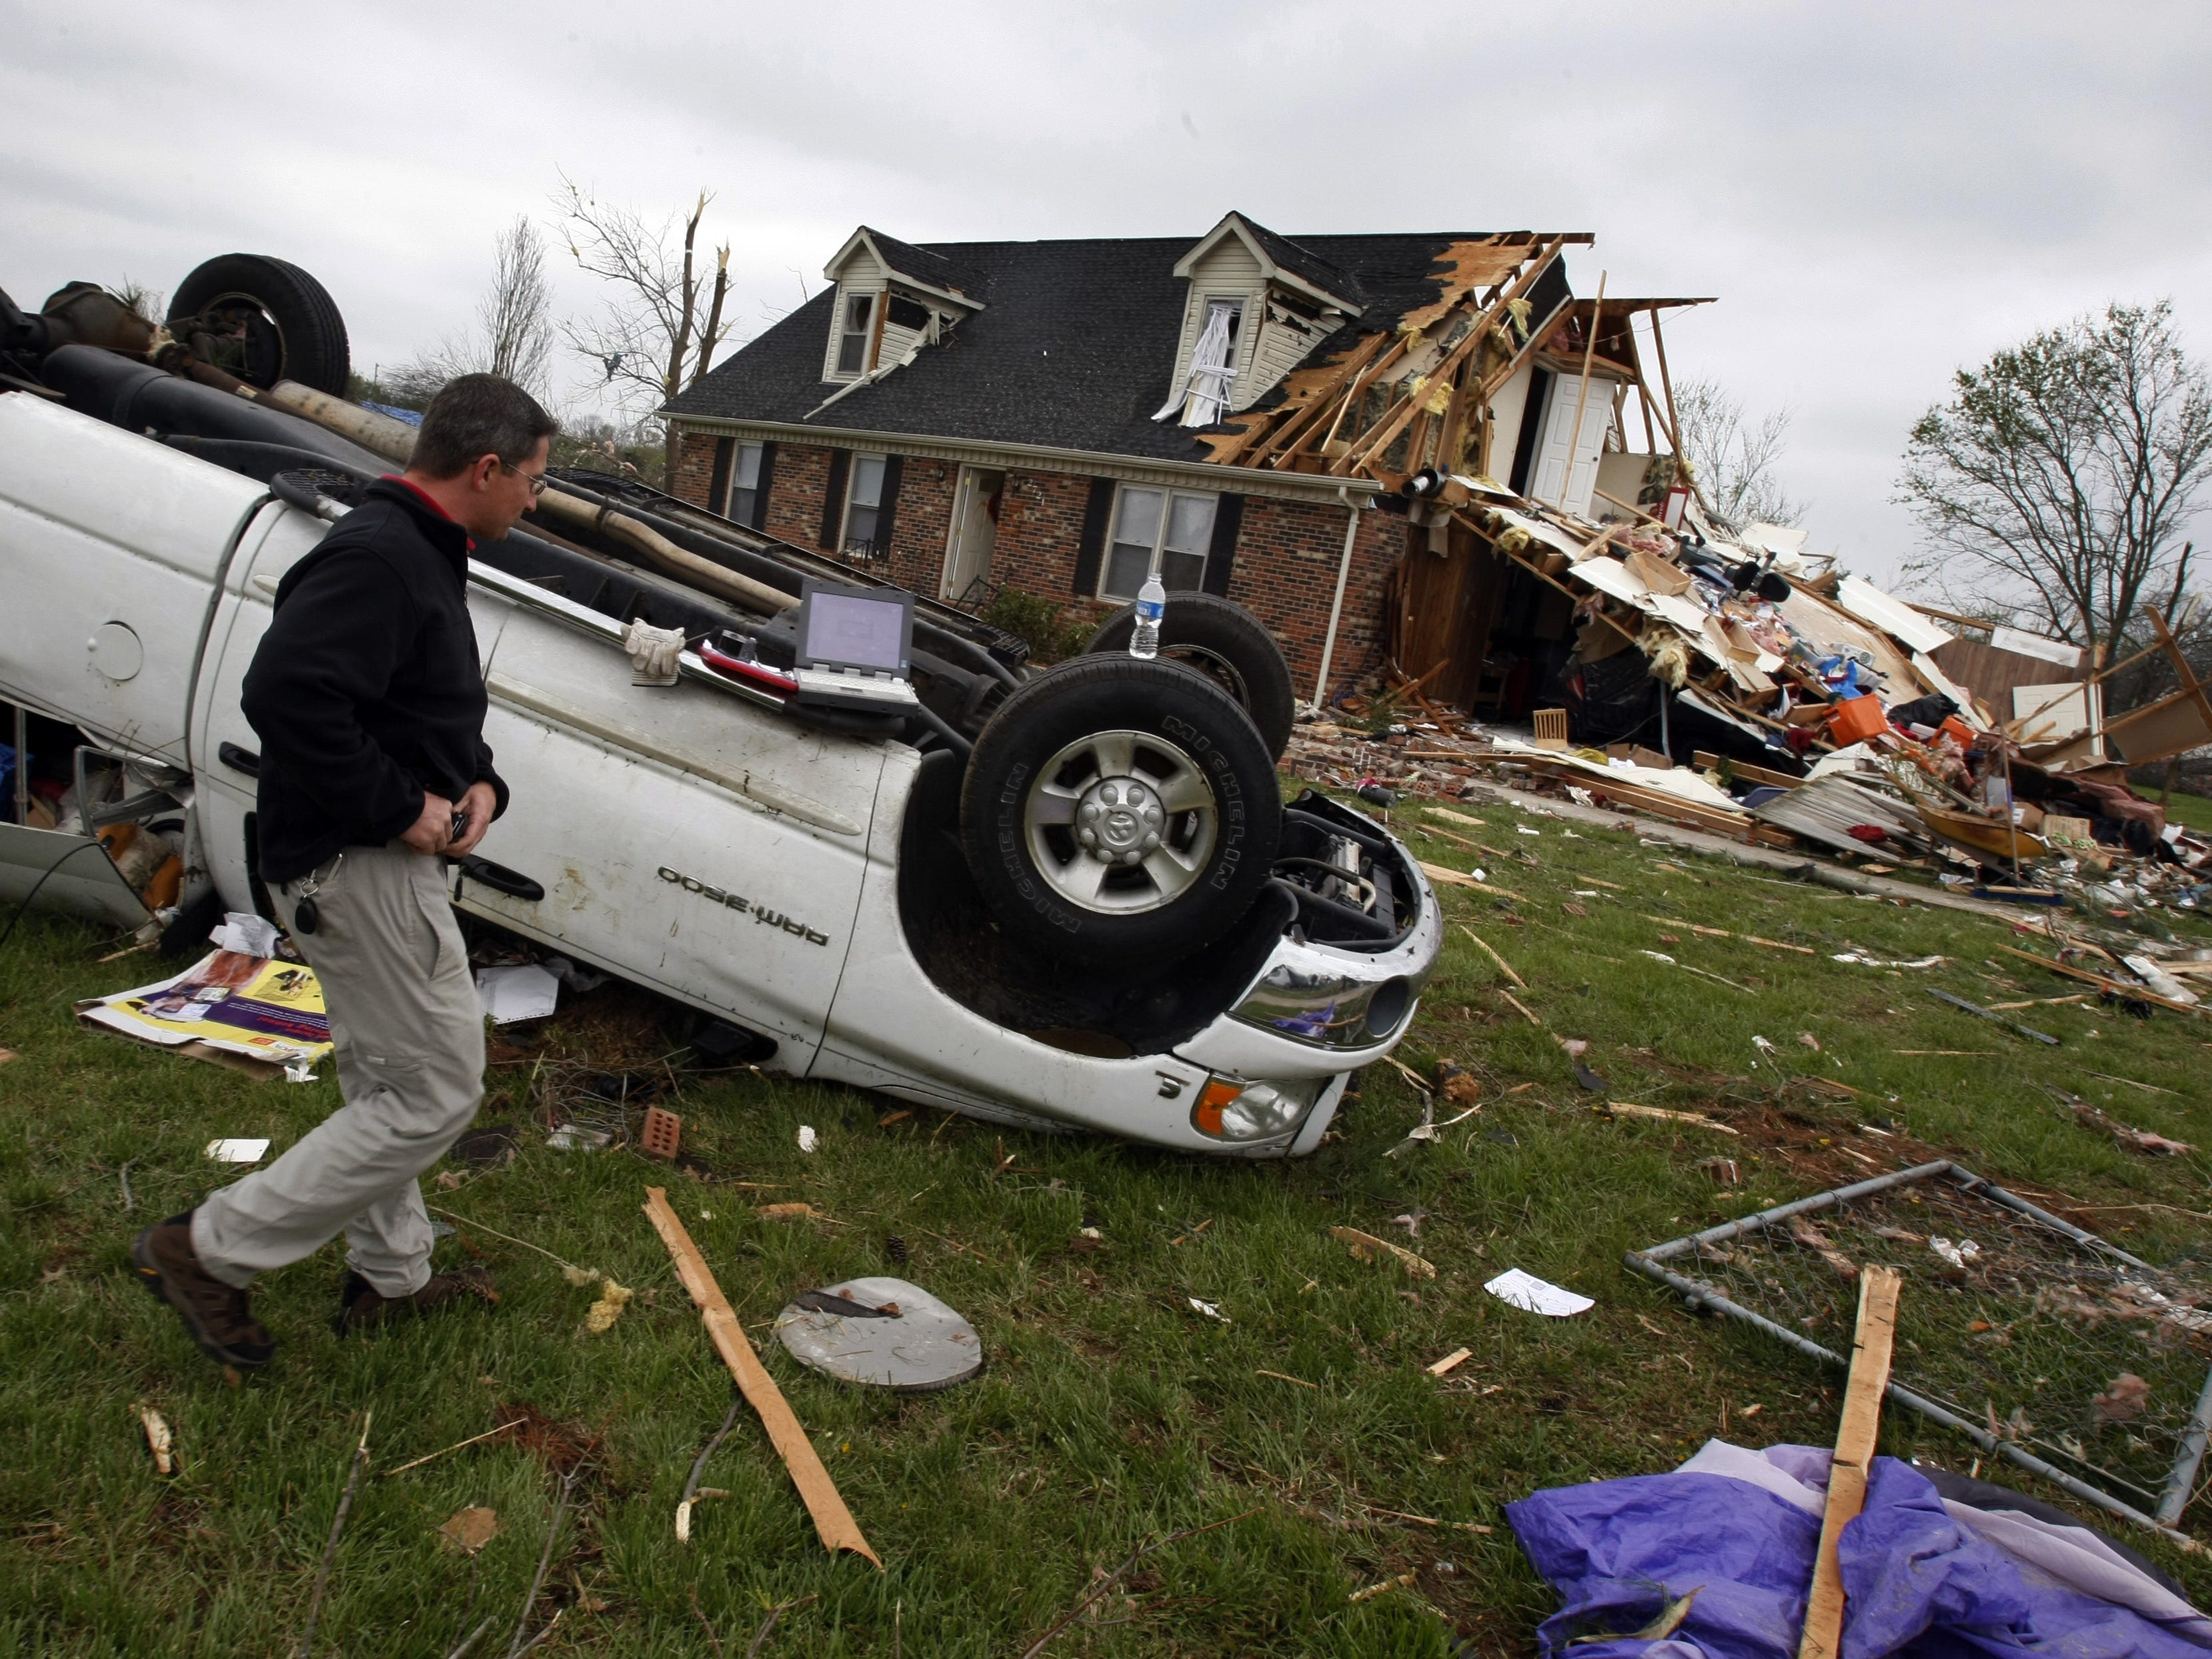 Tony Jones, an apraiser for Travelers Insurance, makes an examination of the damage a day after a tornado roared through Murfreesboro.